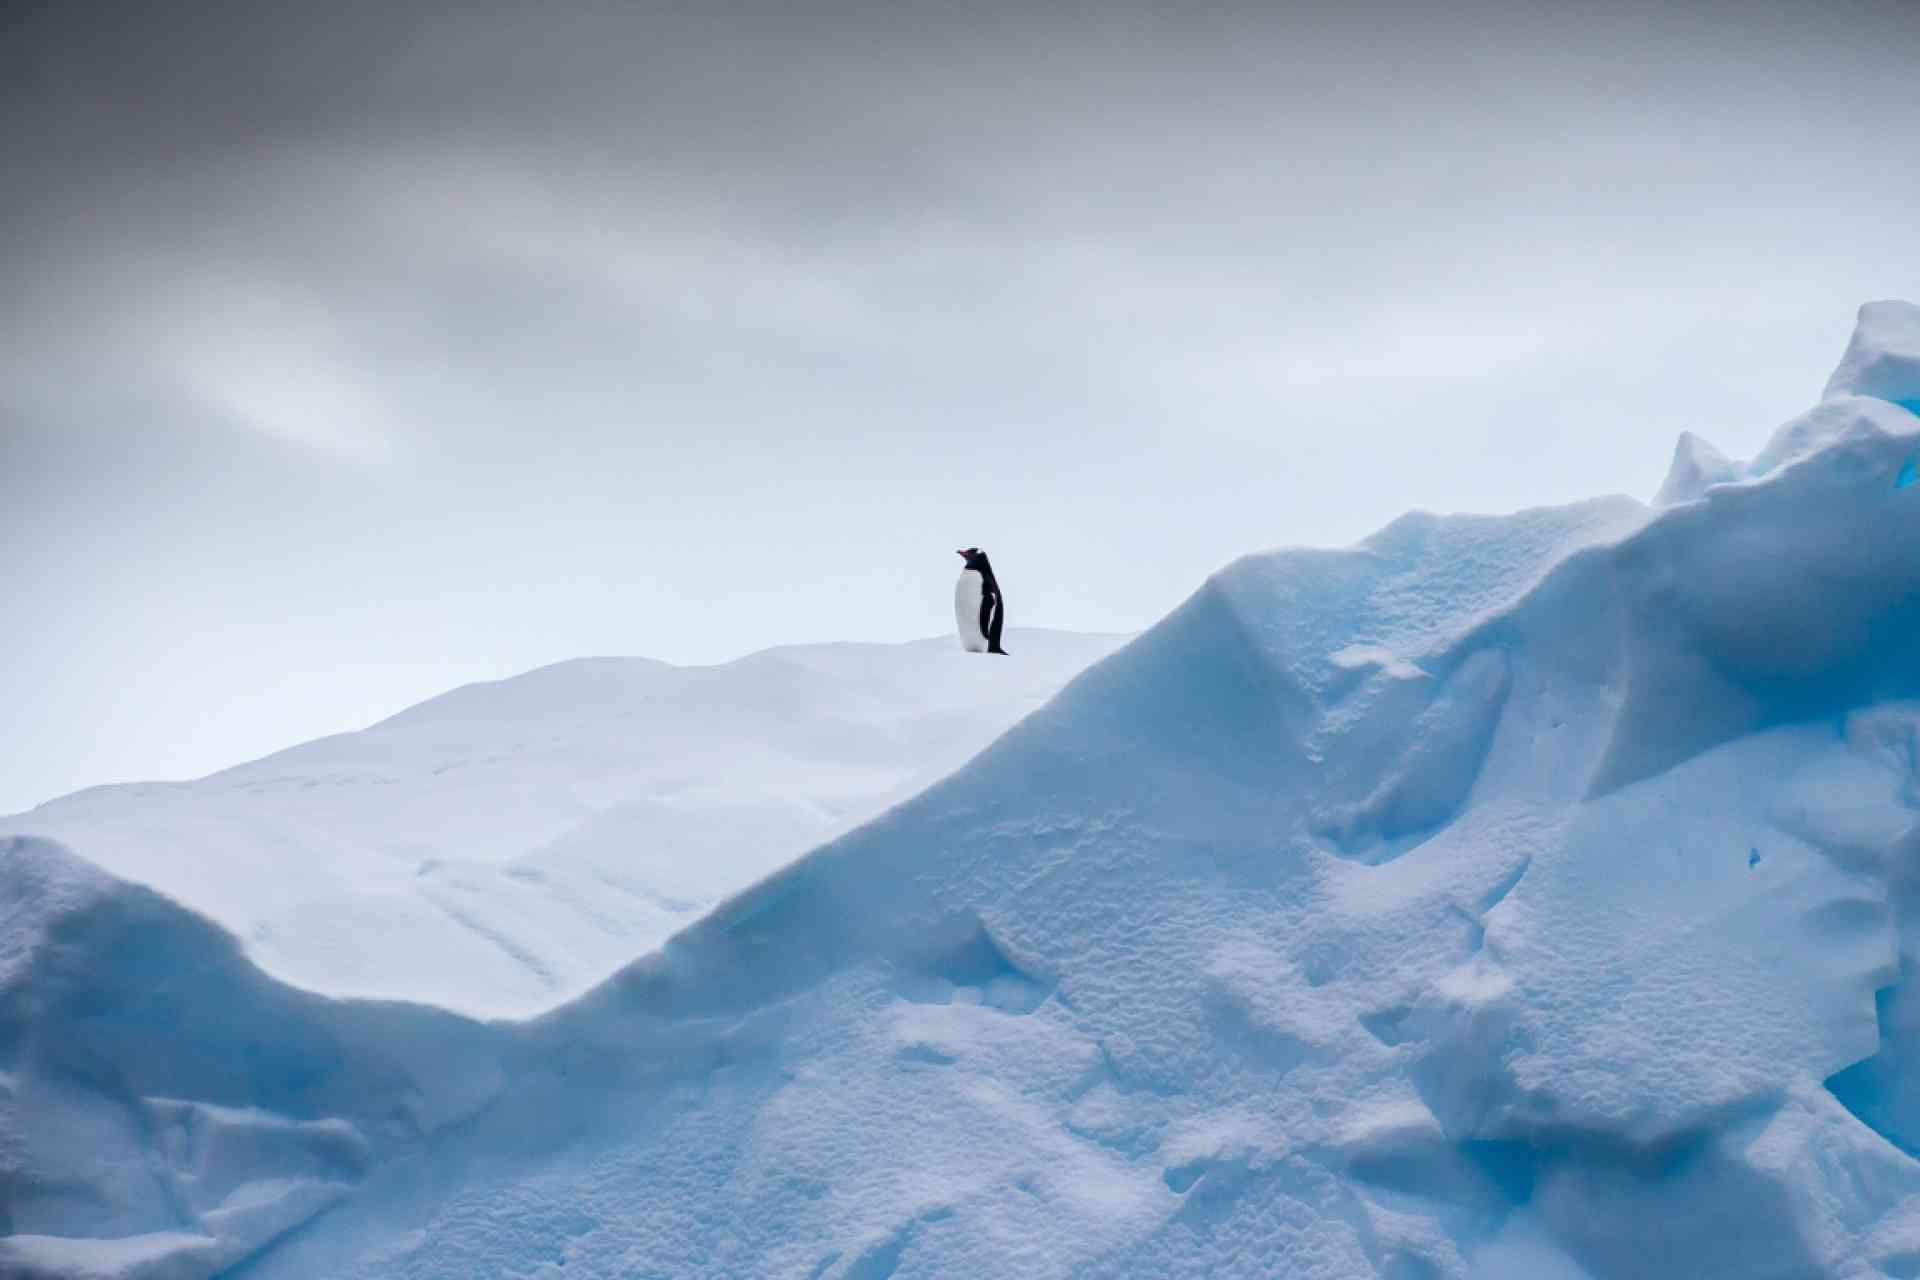 Gentoo Penguin, Cierva Cove, Antarctica by David Hein